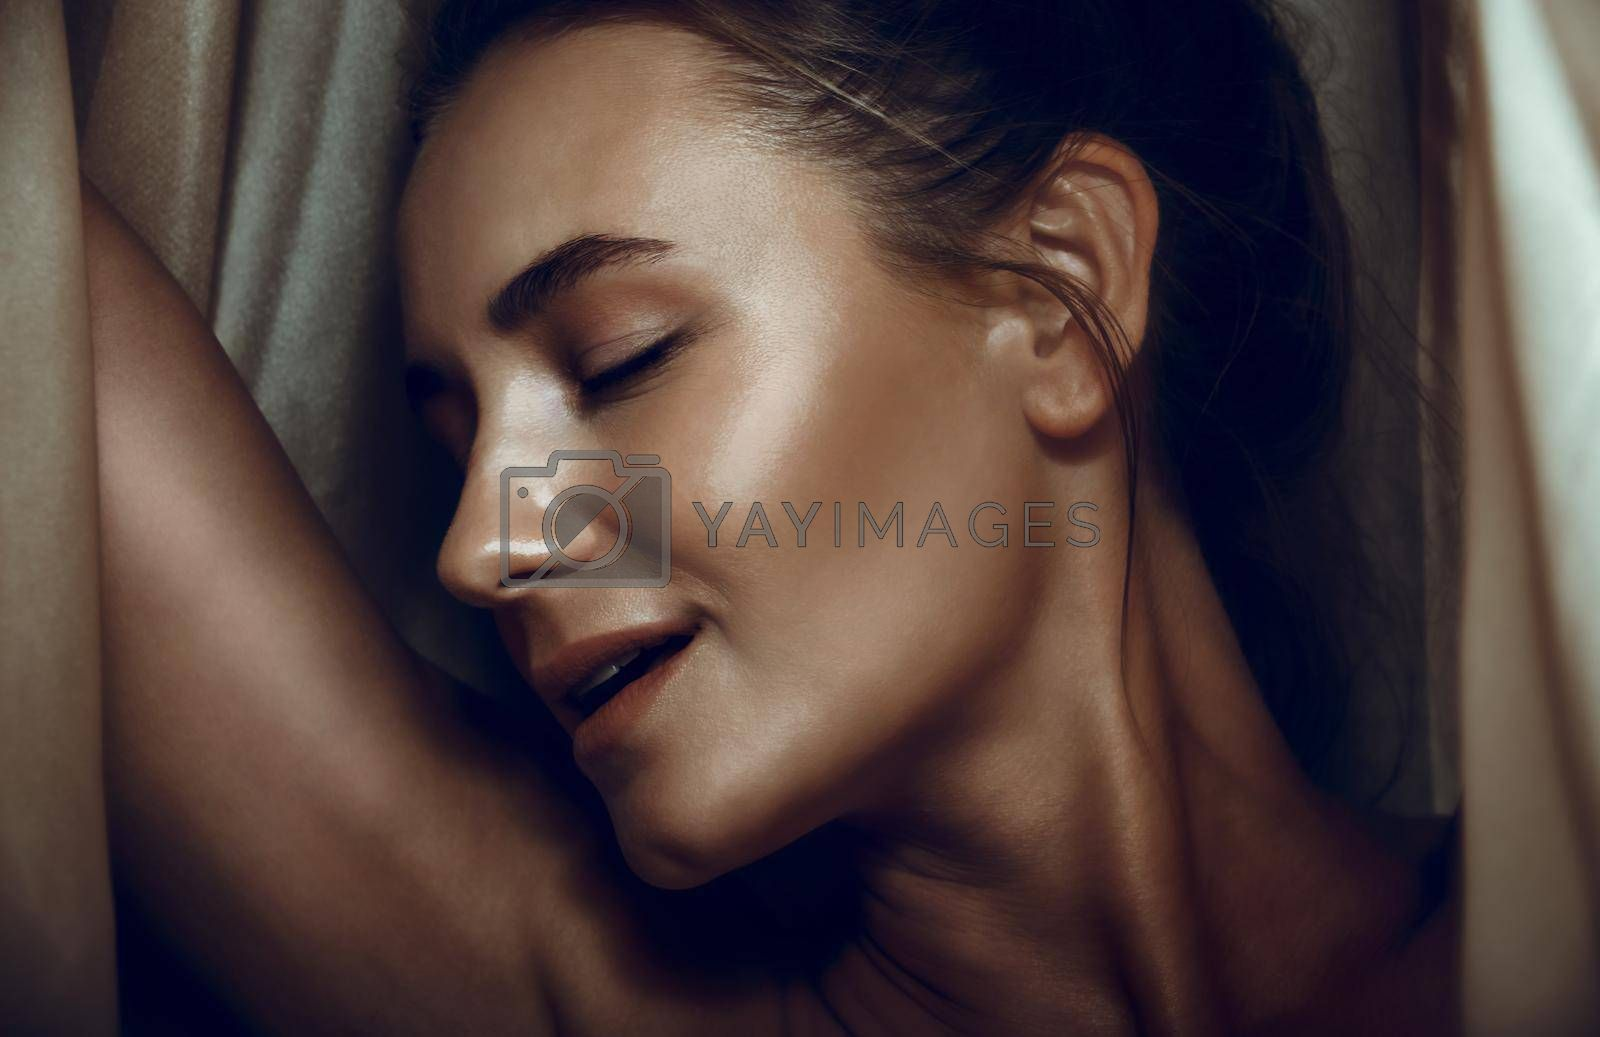 Closeup Face Portrait of a Seductive Woman with Closed Eyes. Authentic Beauty of the Female Sensuality. Fashion Look.